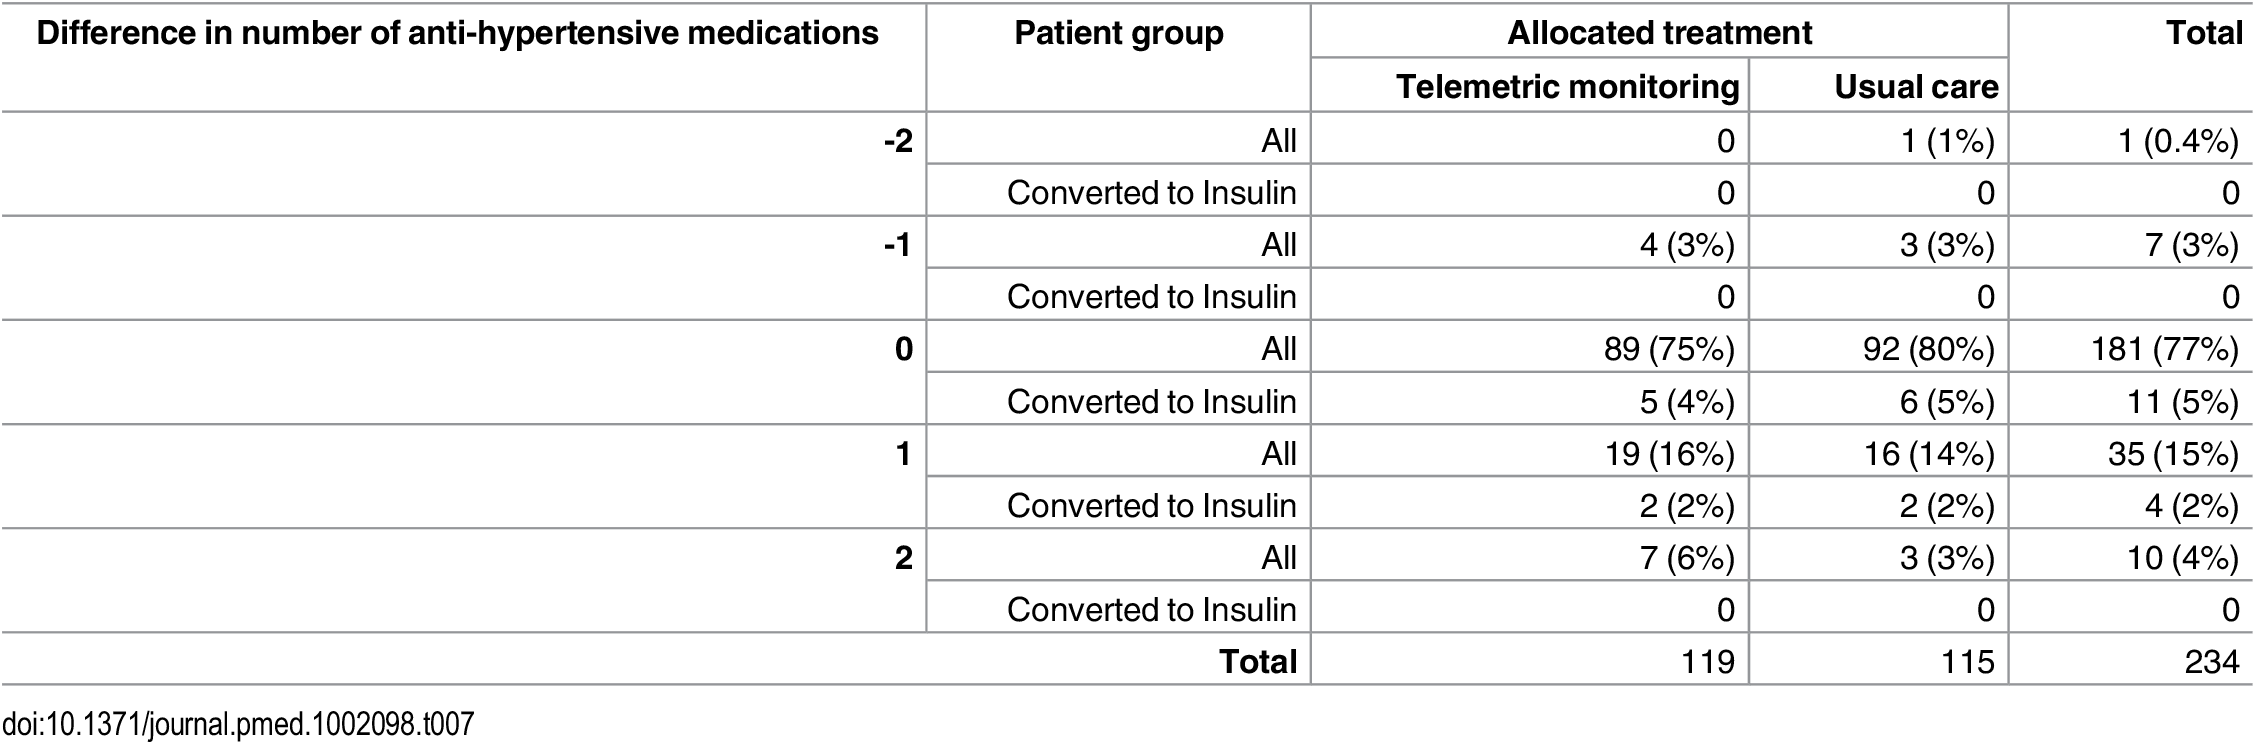 Distribution of differences in numbers of anti-hypertensive medications prescribed between baseline and follow-up in Telescot diabetes trial participants by trial arm and initiation of insulin during follow-up.